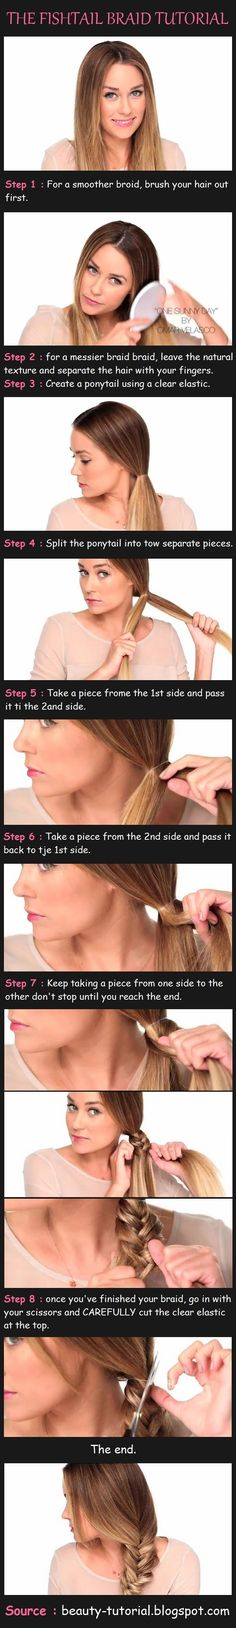 The Fishtail Braid Tutorial | Beauty Tutorials by imad karrari